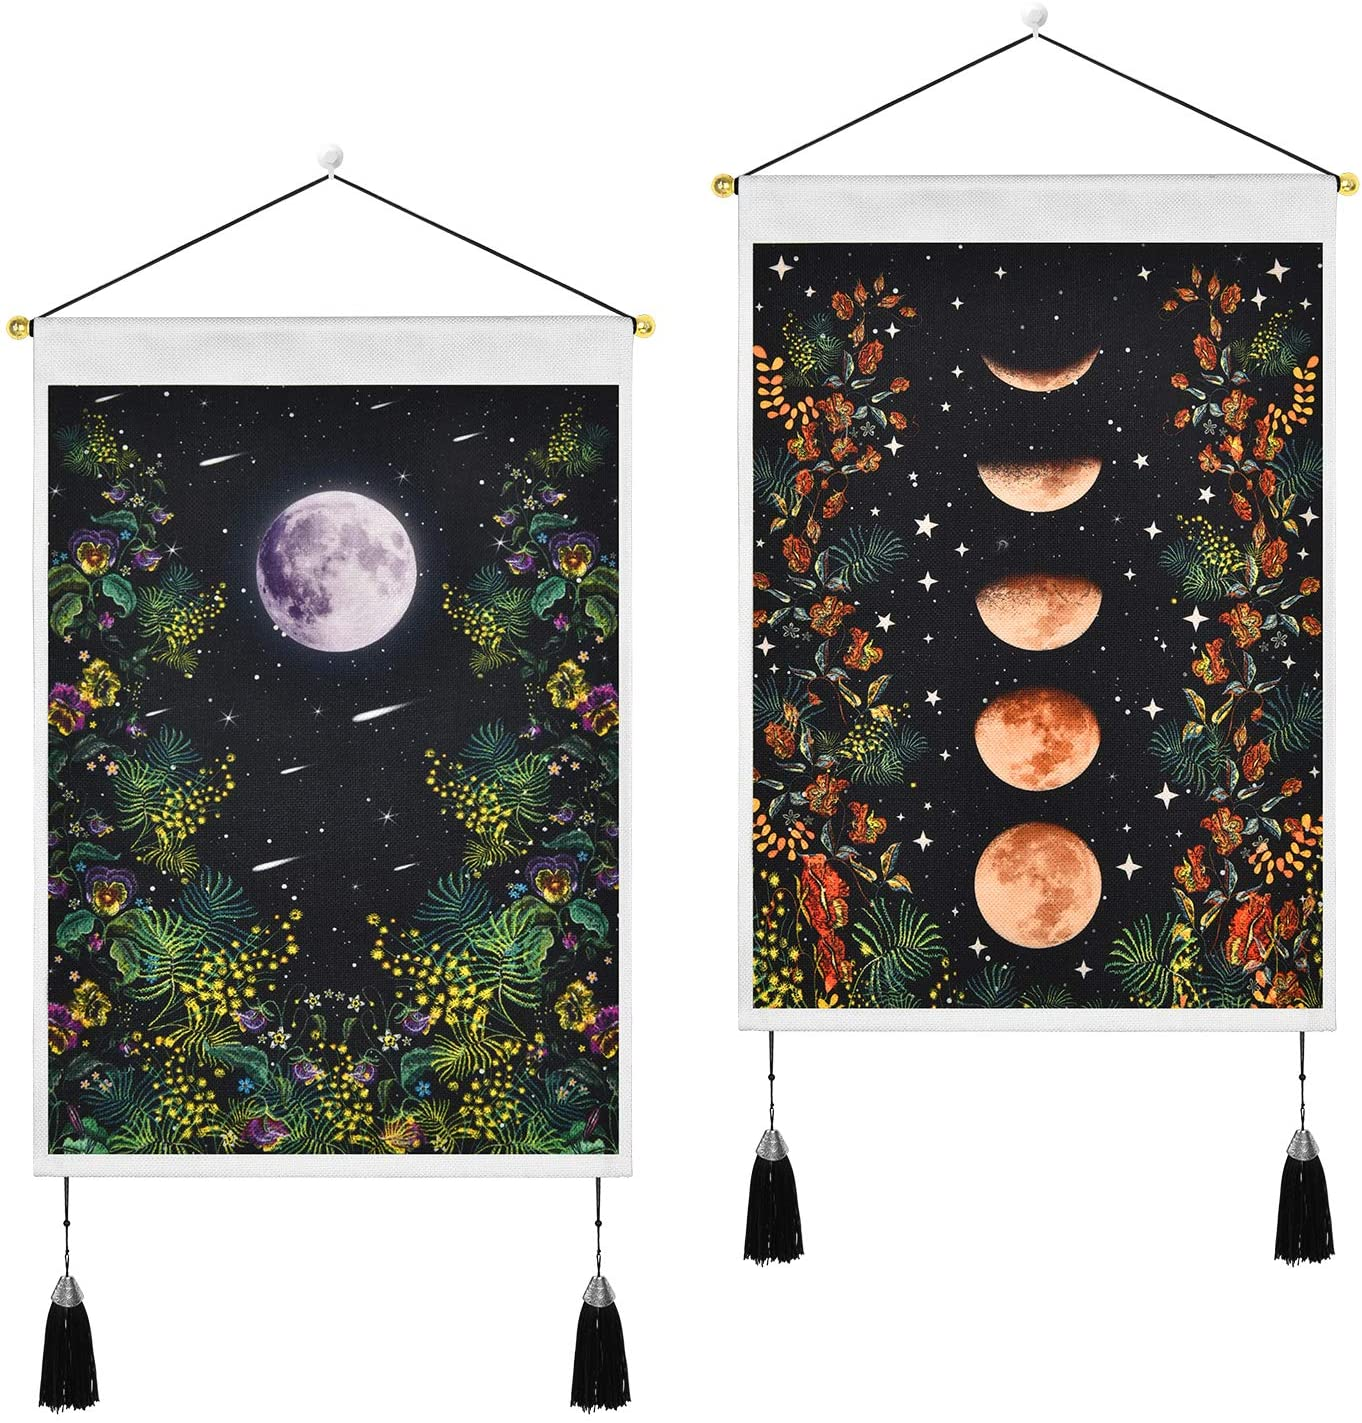 Pack of 2 Tapestry Moonlit Garden Tapestry Vine Flowers Tapestries Black Background Floral Tapestry Wall Hanging for Room (13.8 x 19.7 inches)